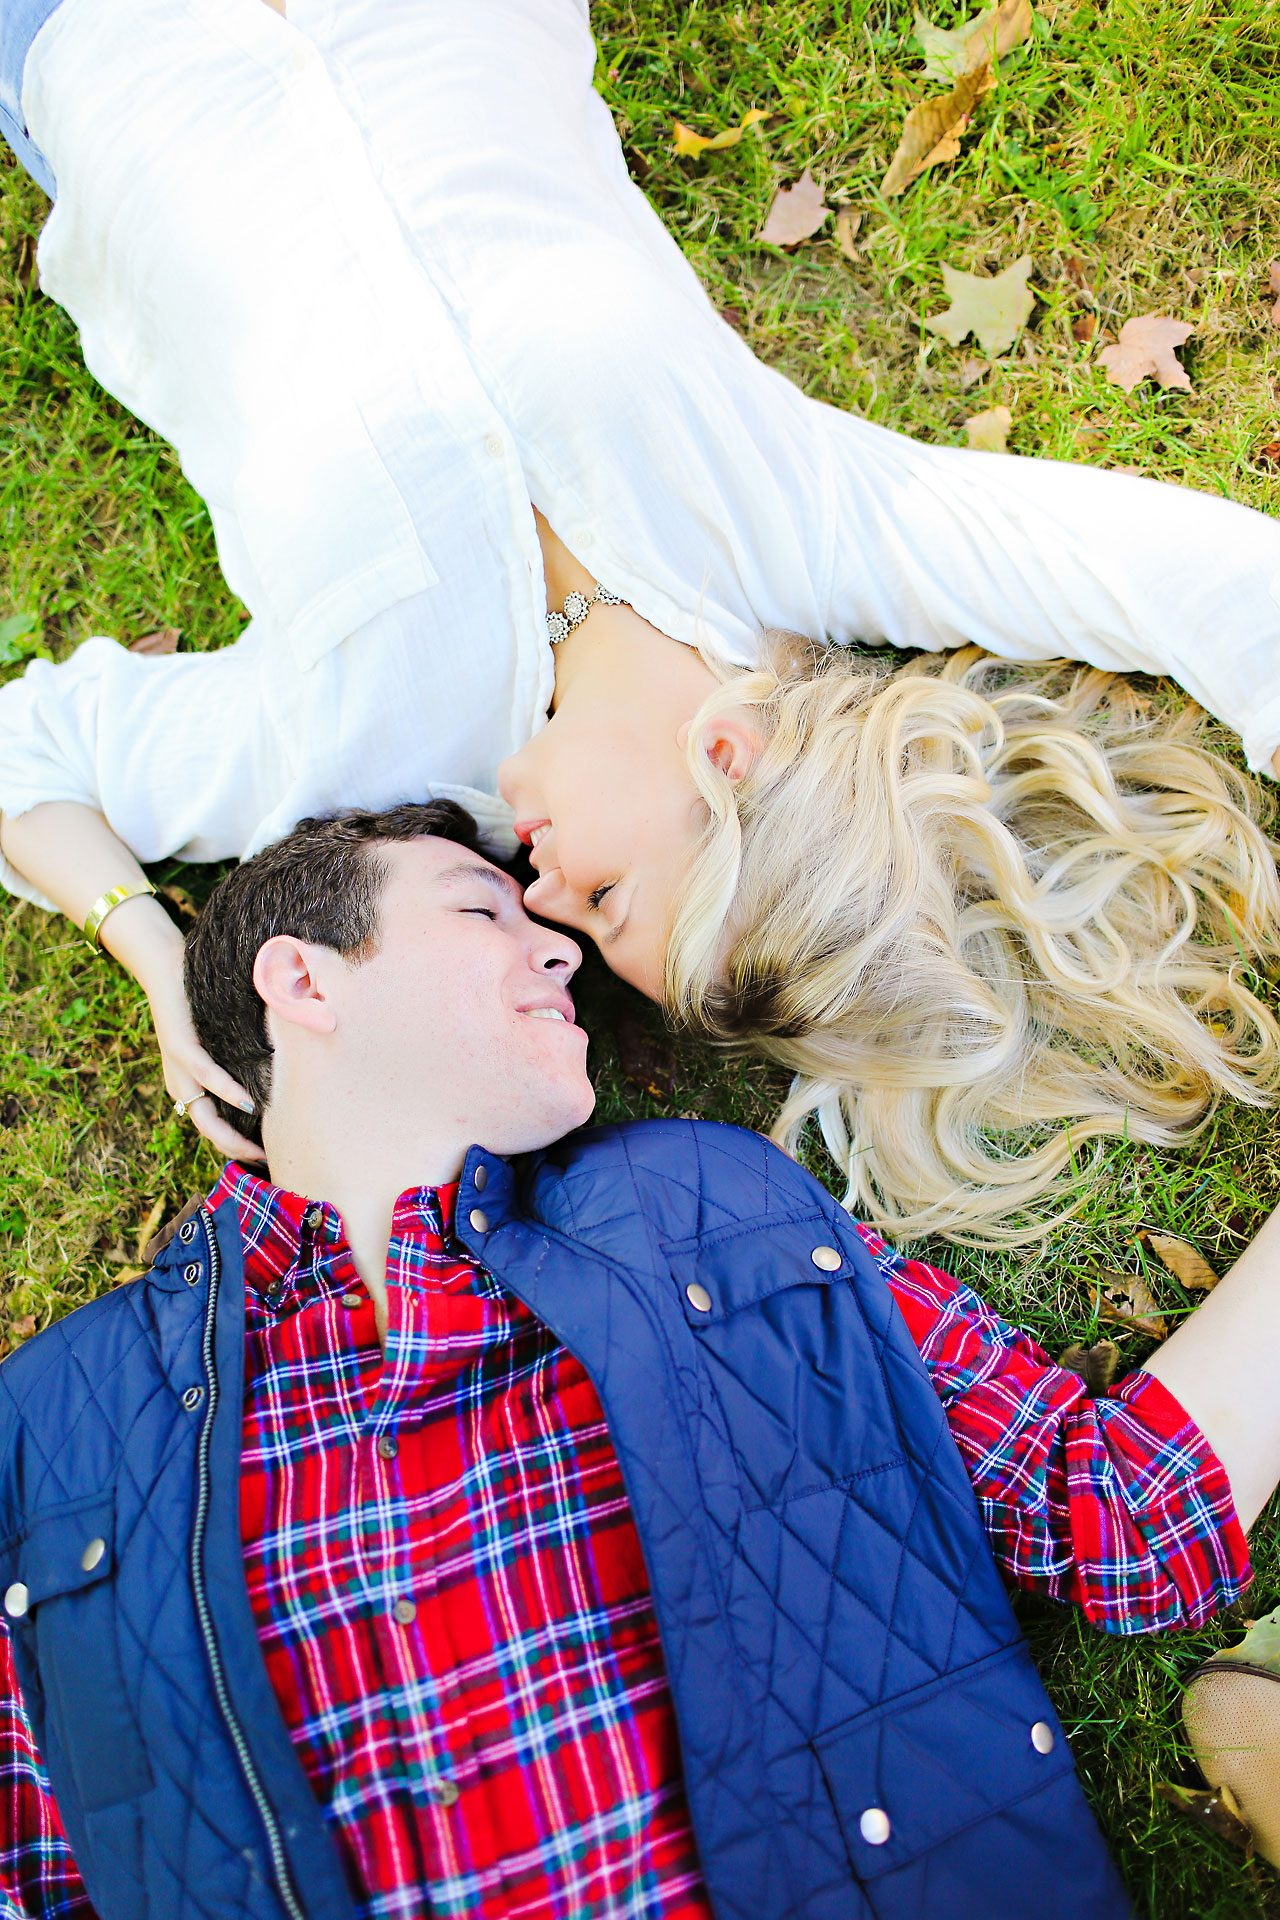 004 Taylor AJ Bloomington Engagement Session